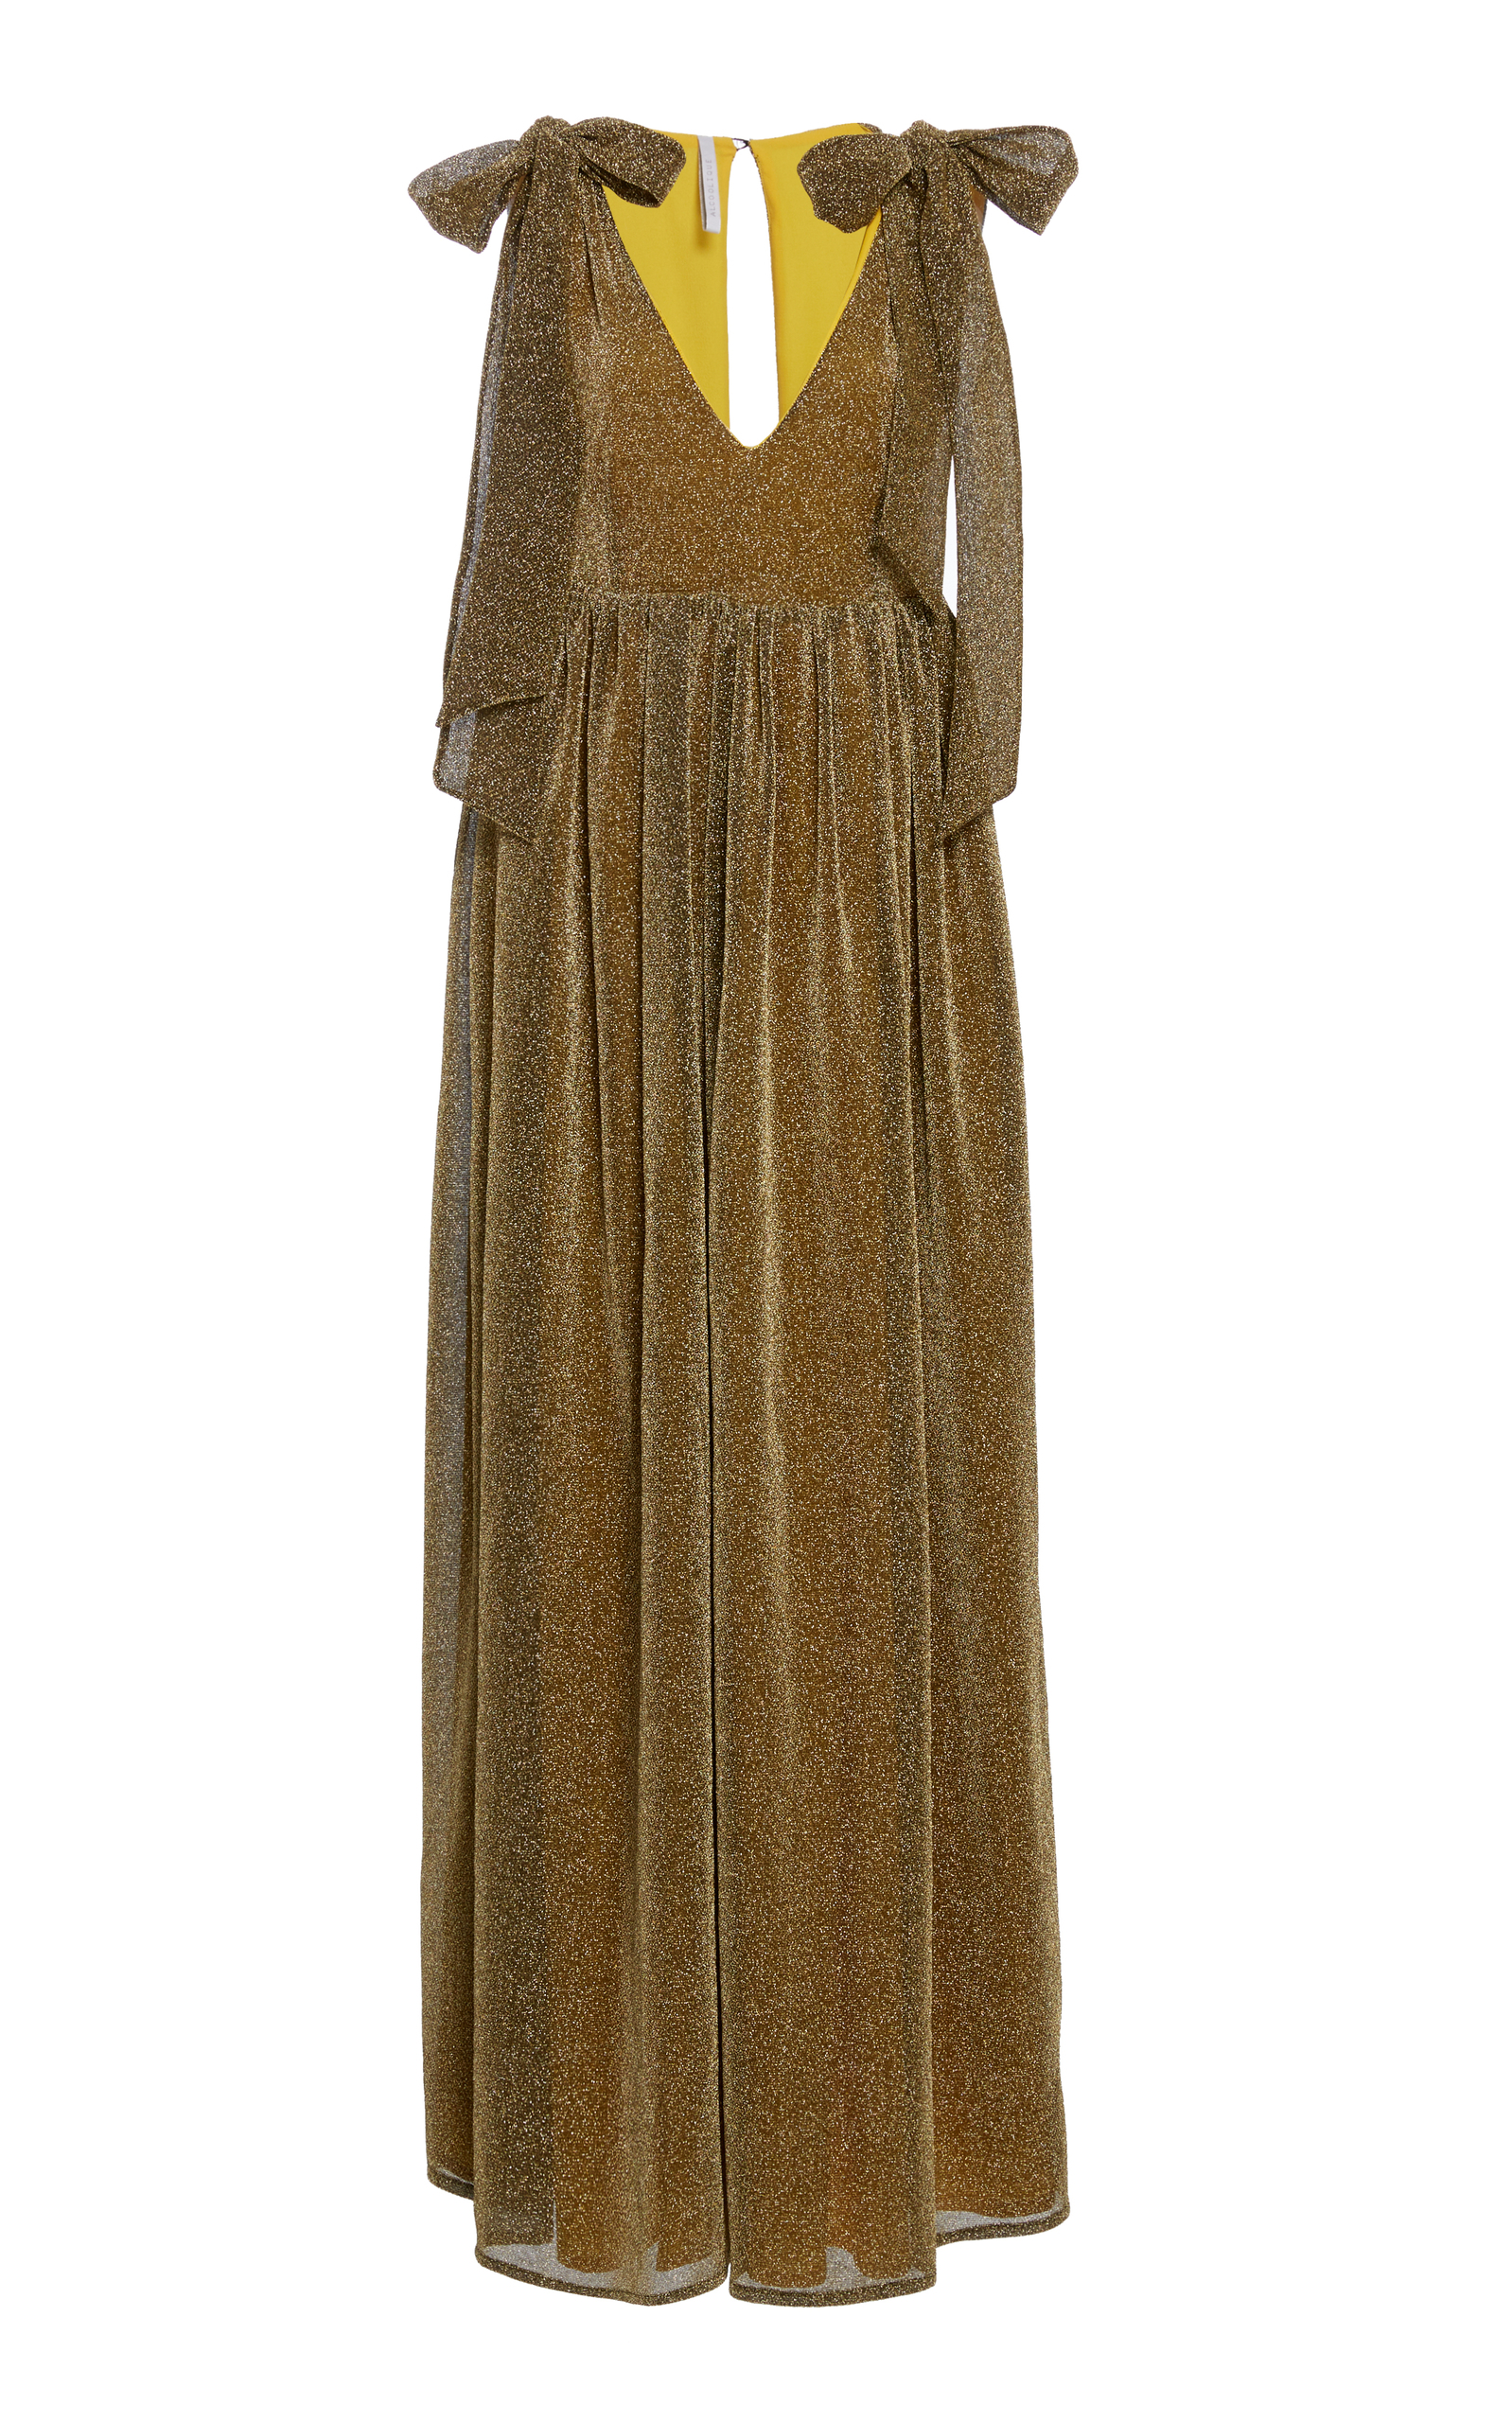 ALCOOLIQUE Vita Long Dress With Bow On Shoulder in Gold